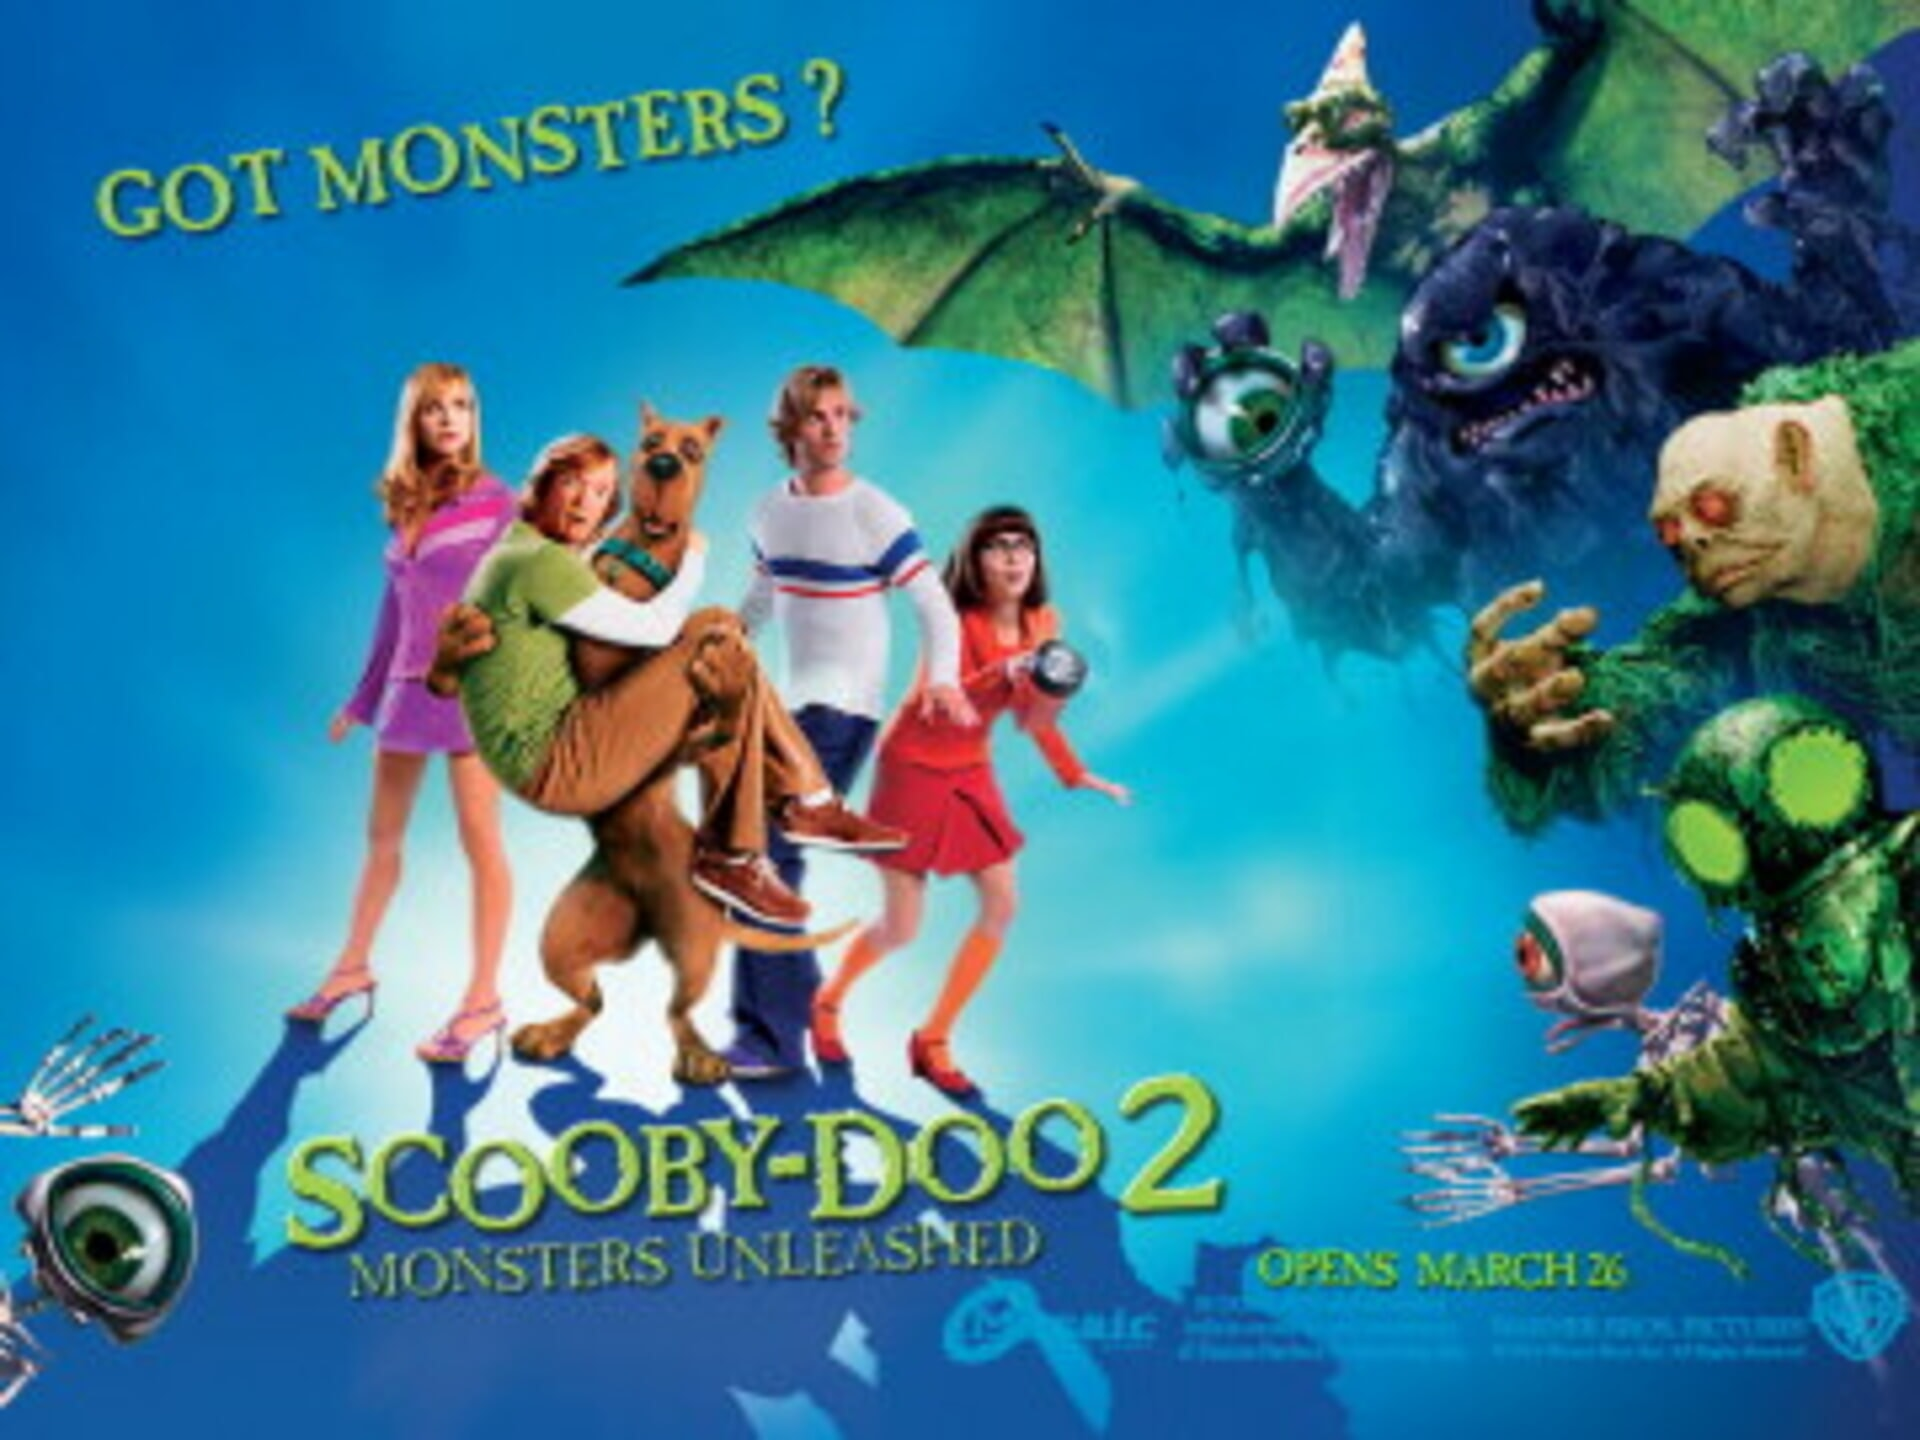 Scooby-doo 2: Monsters Unleashed - Image 7